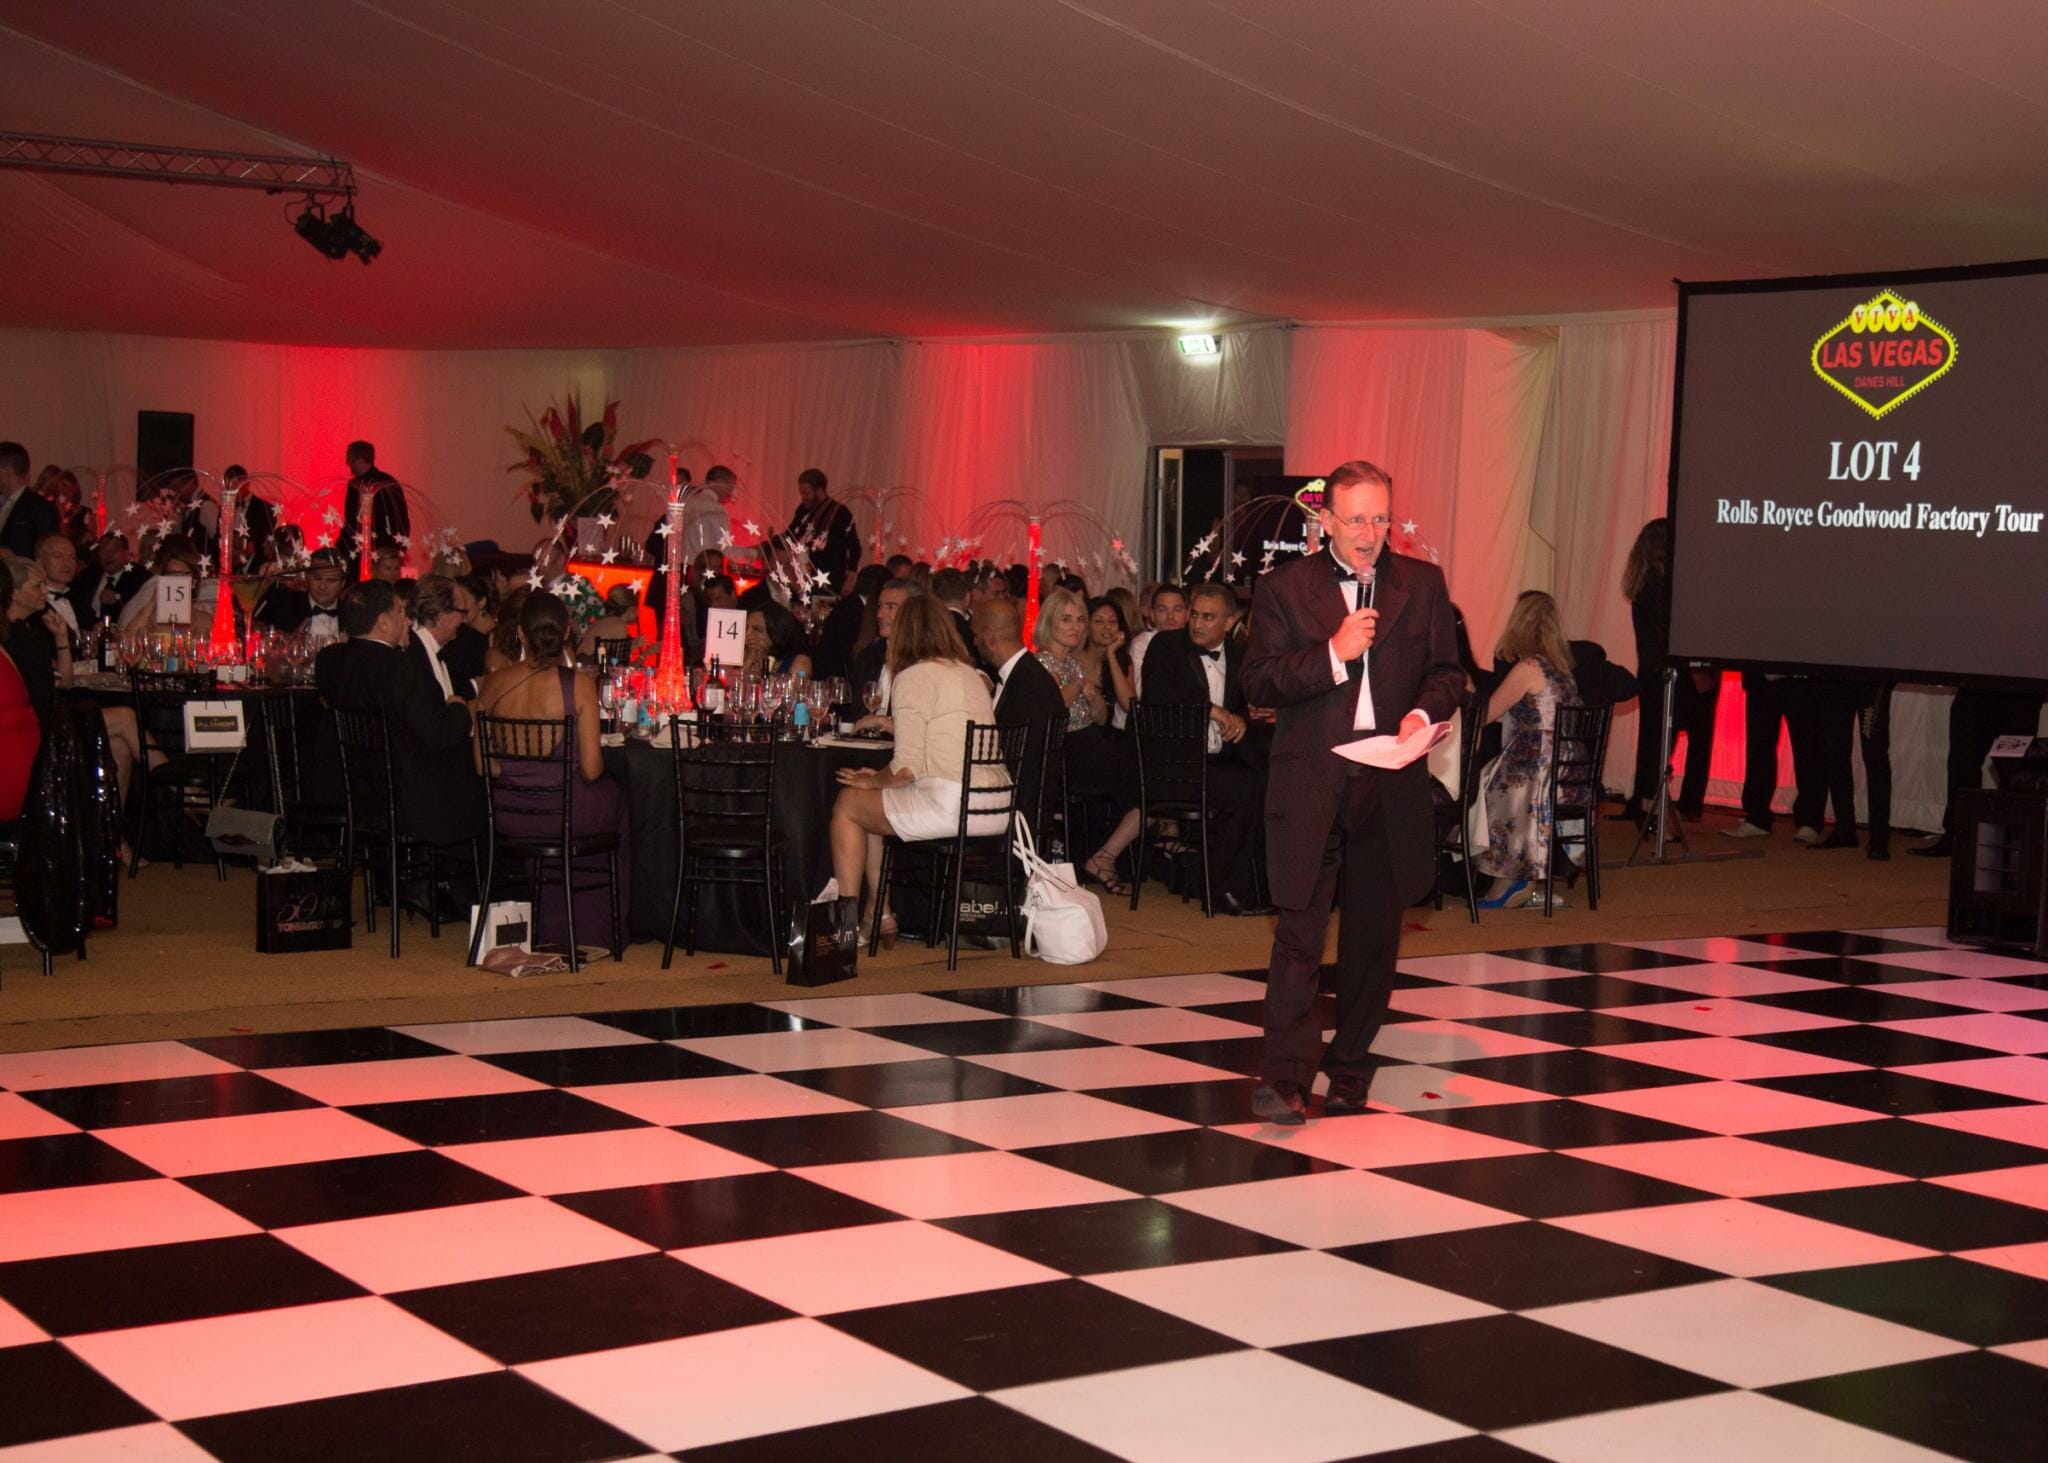 Oxfordshire Fundraising and Charity Auctioneer oz make your next event get bigger and better